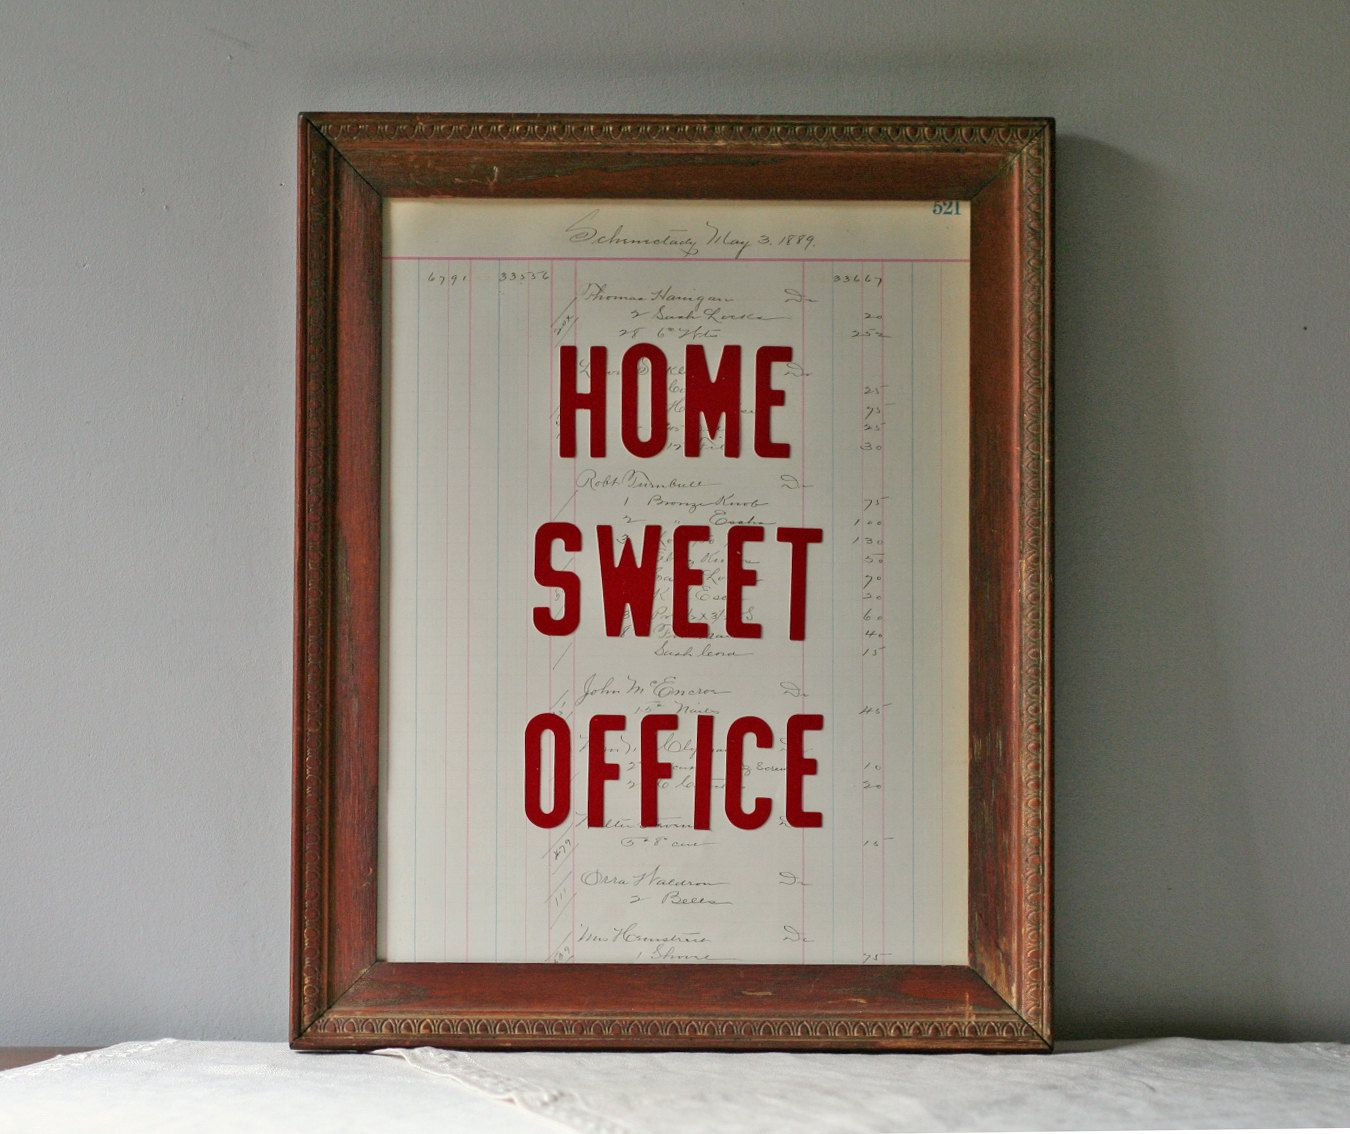 Home Sweet Office Vintage Framed Print